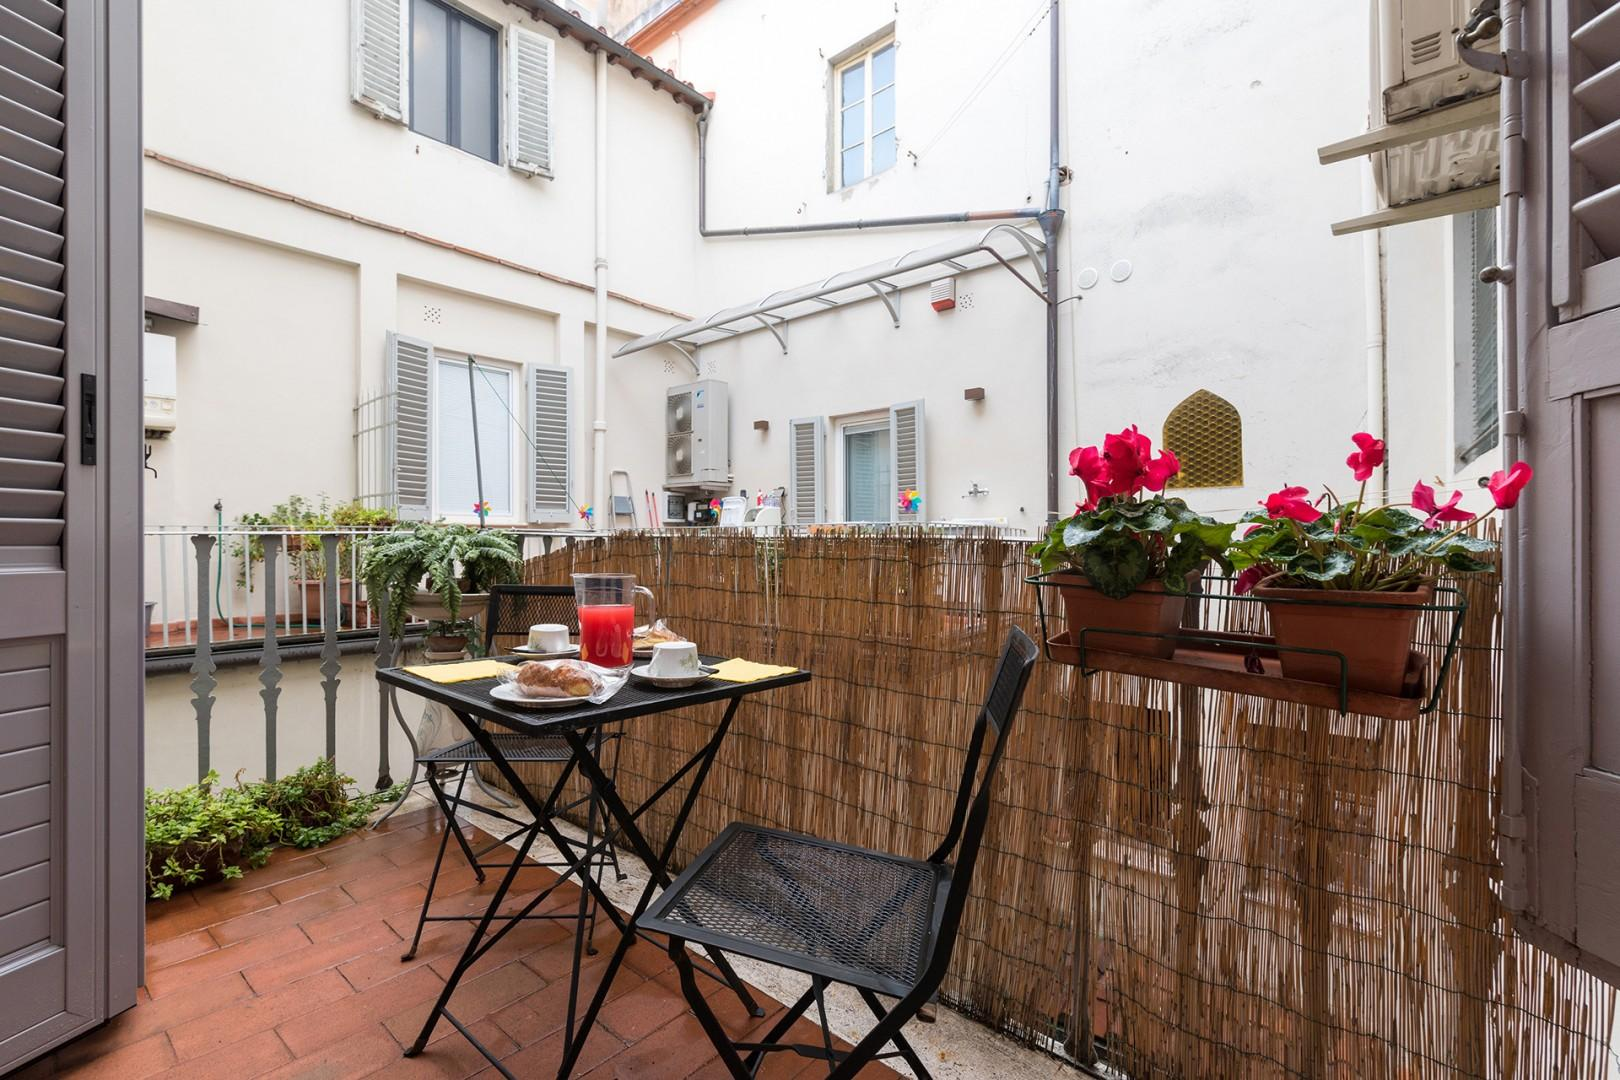 The small terrace provides a sunny retreat. It faces the back of the neighboring apartments.